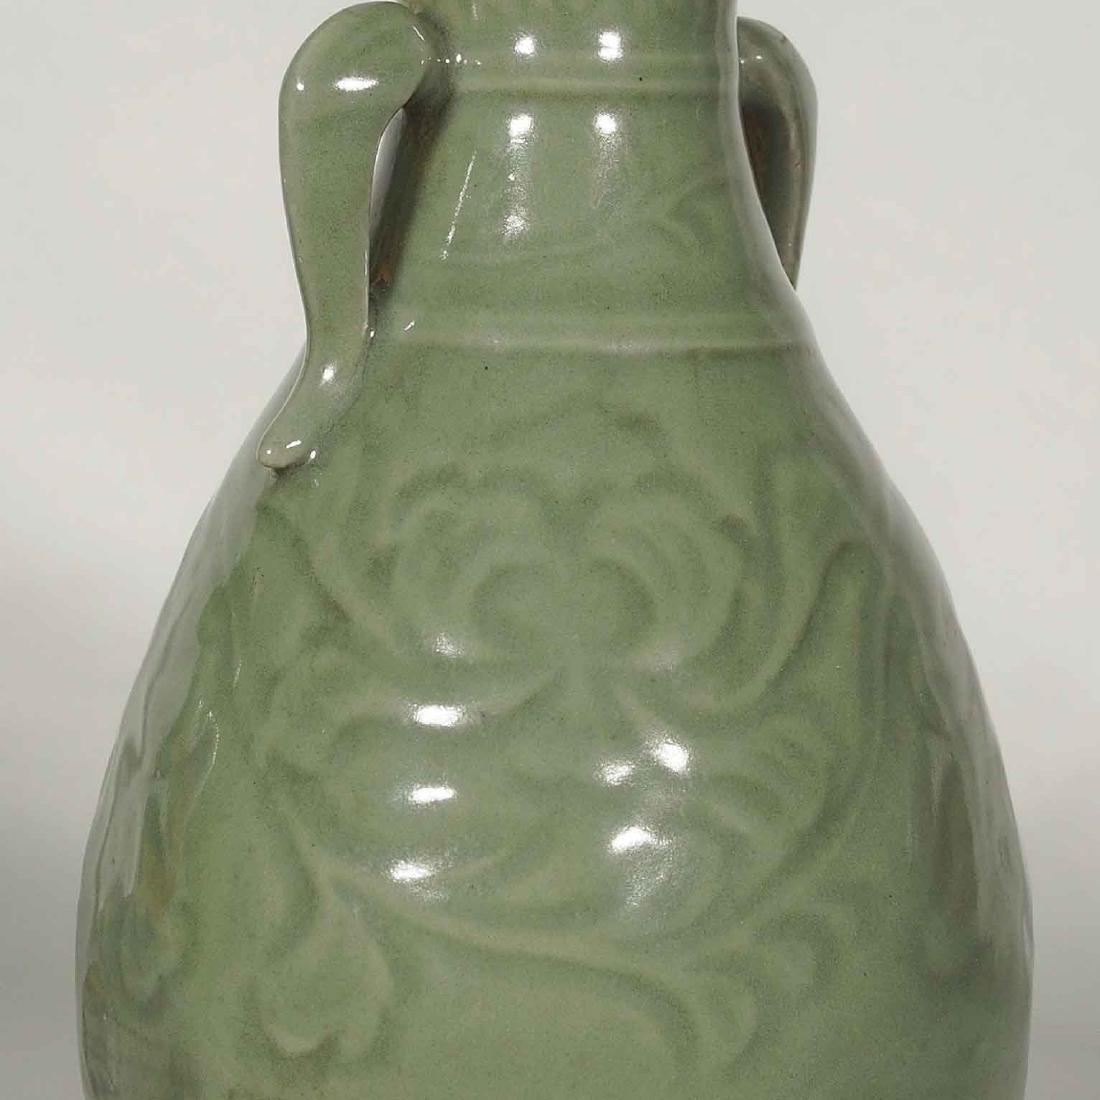 Yaozhou Vase with Carved Peony Scroll, Song Dynasty - 5